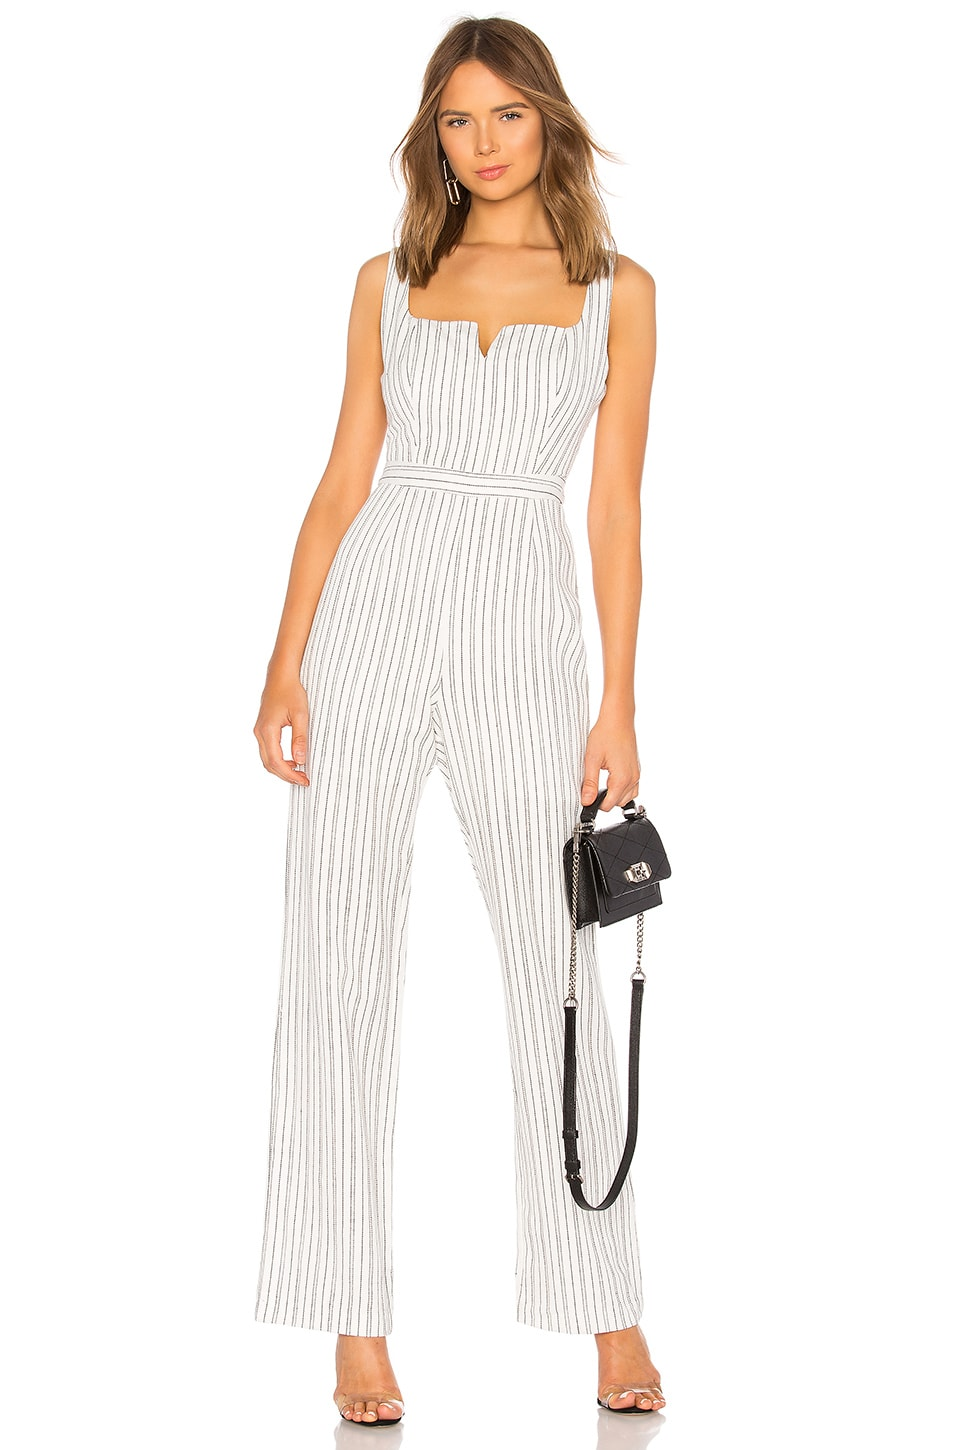 Line & Dot Toby Jumpsuit in White & Black